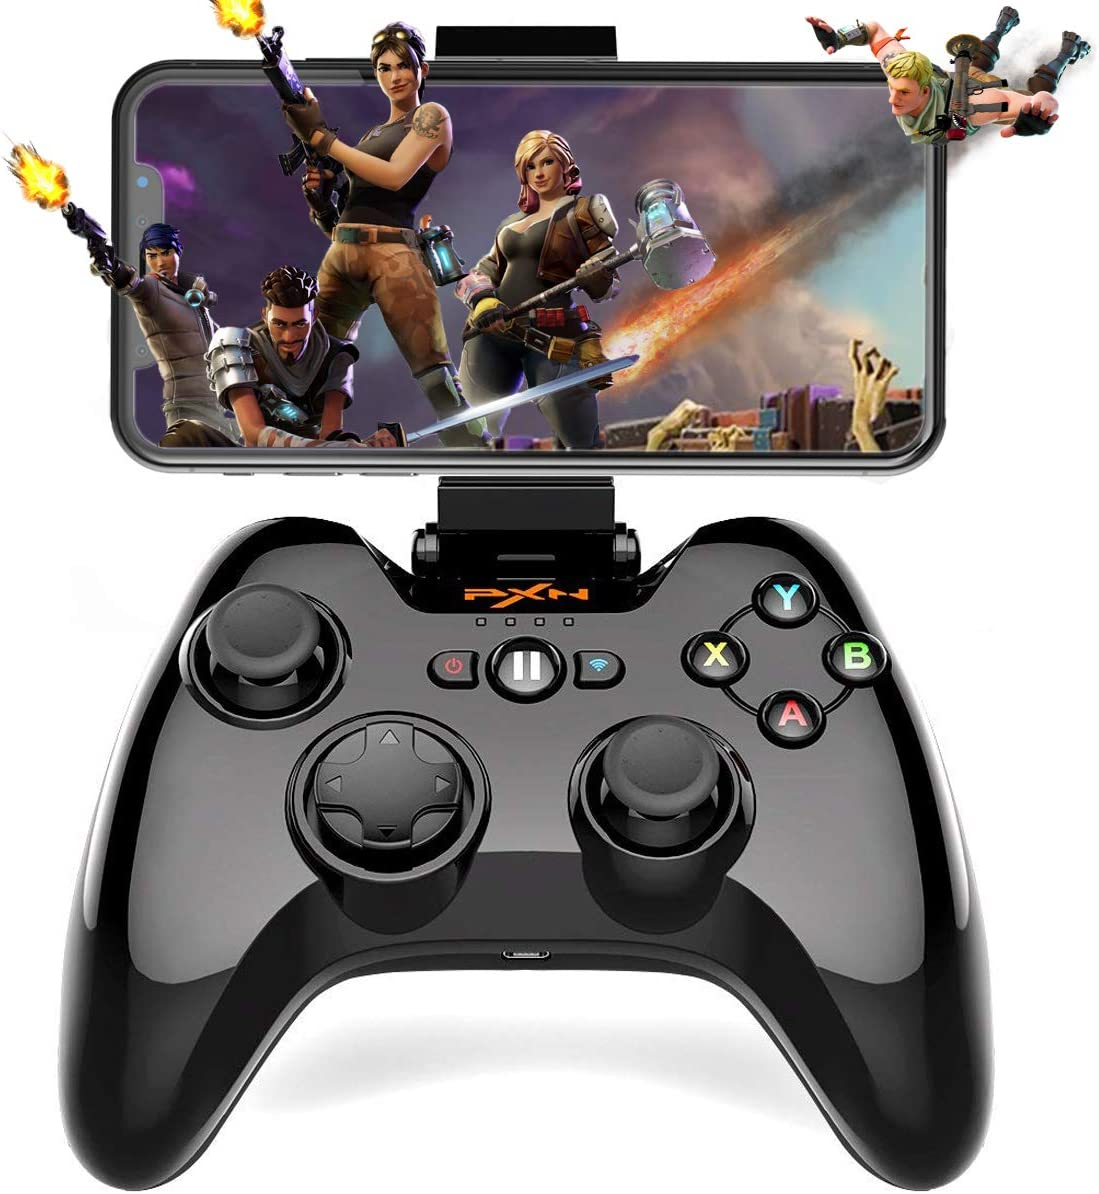 Amazon Com Wireless Gamepad Controller Megadream Ios Mfi Gaming Joystick With Clamp Holder For Iphone Xs Xr X 8 Plus 8 7 Plus 7 6s 6 5s 5 Ipad Ipad Pro Air Mini